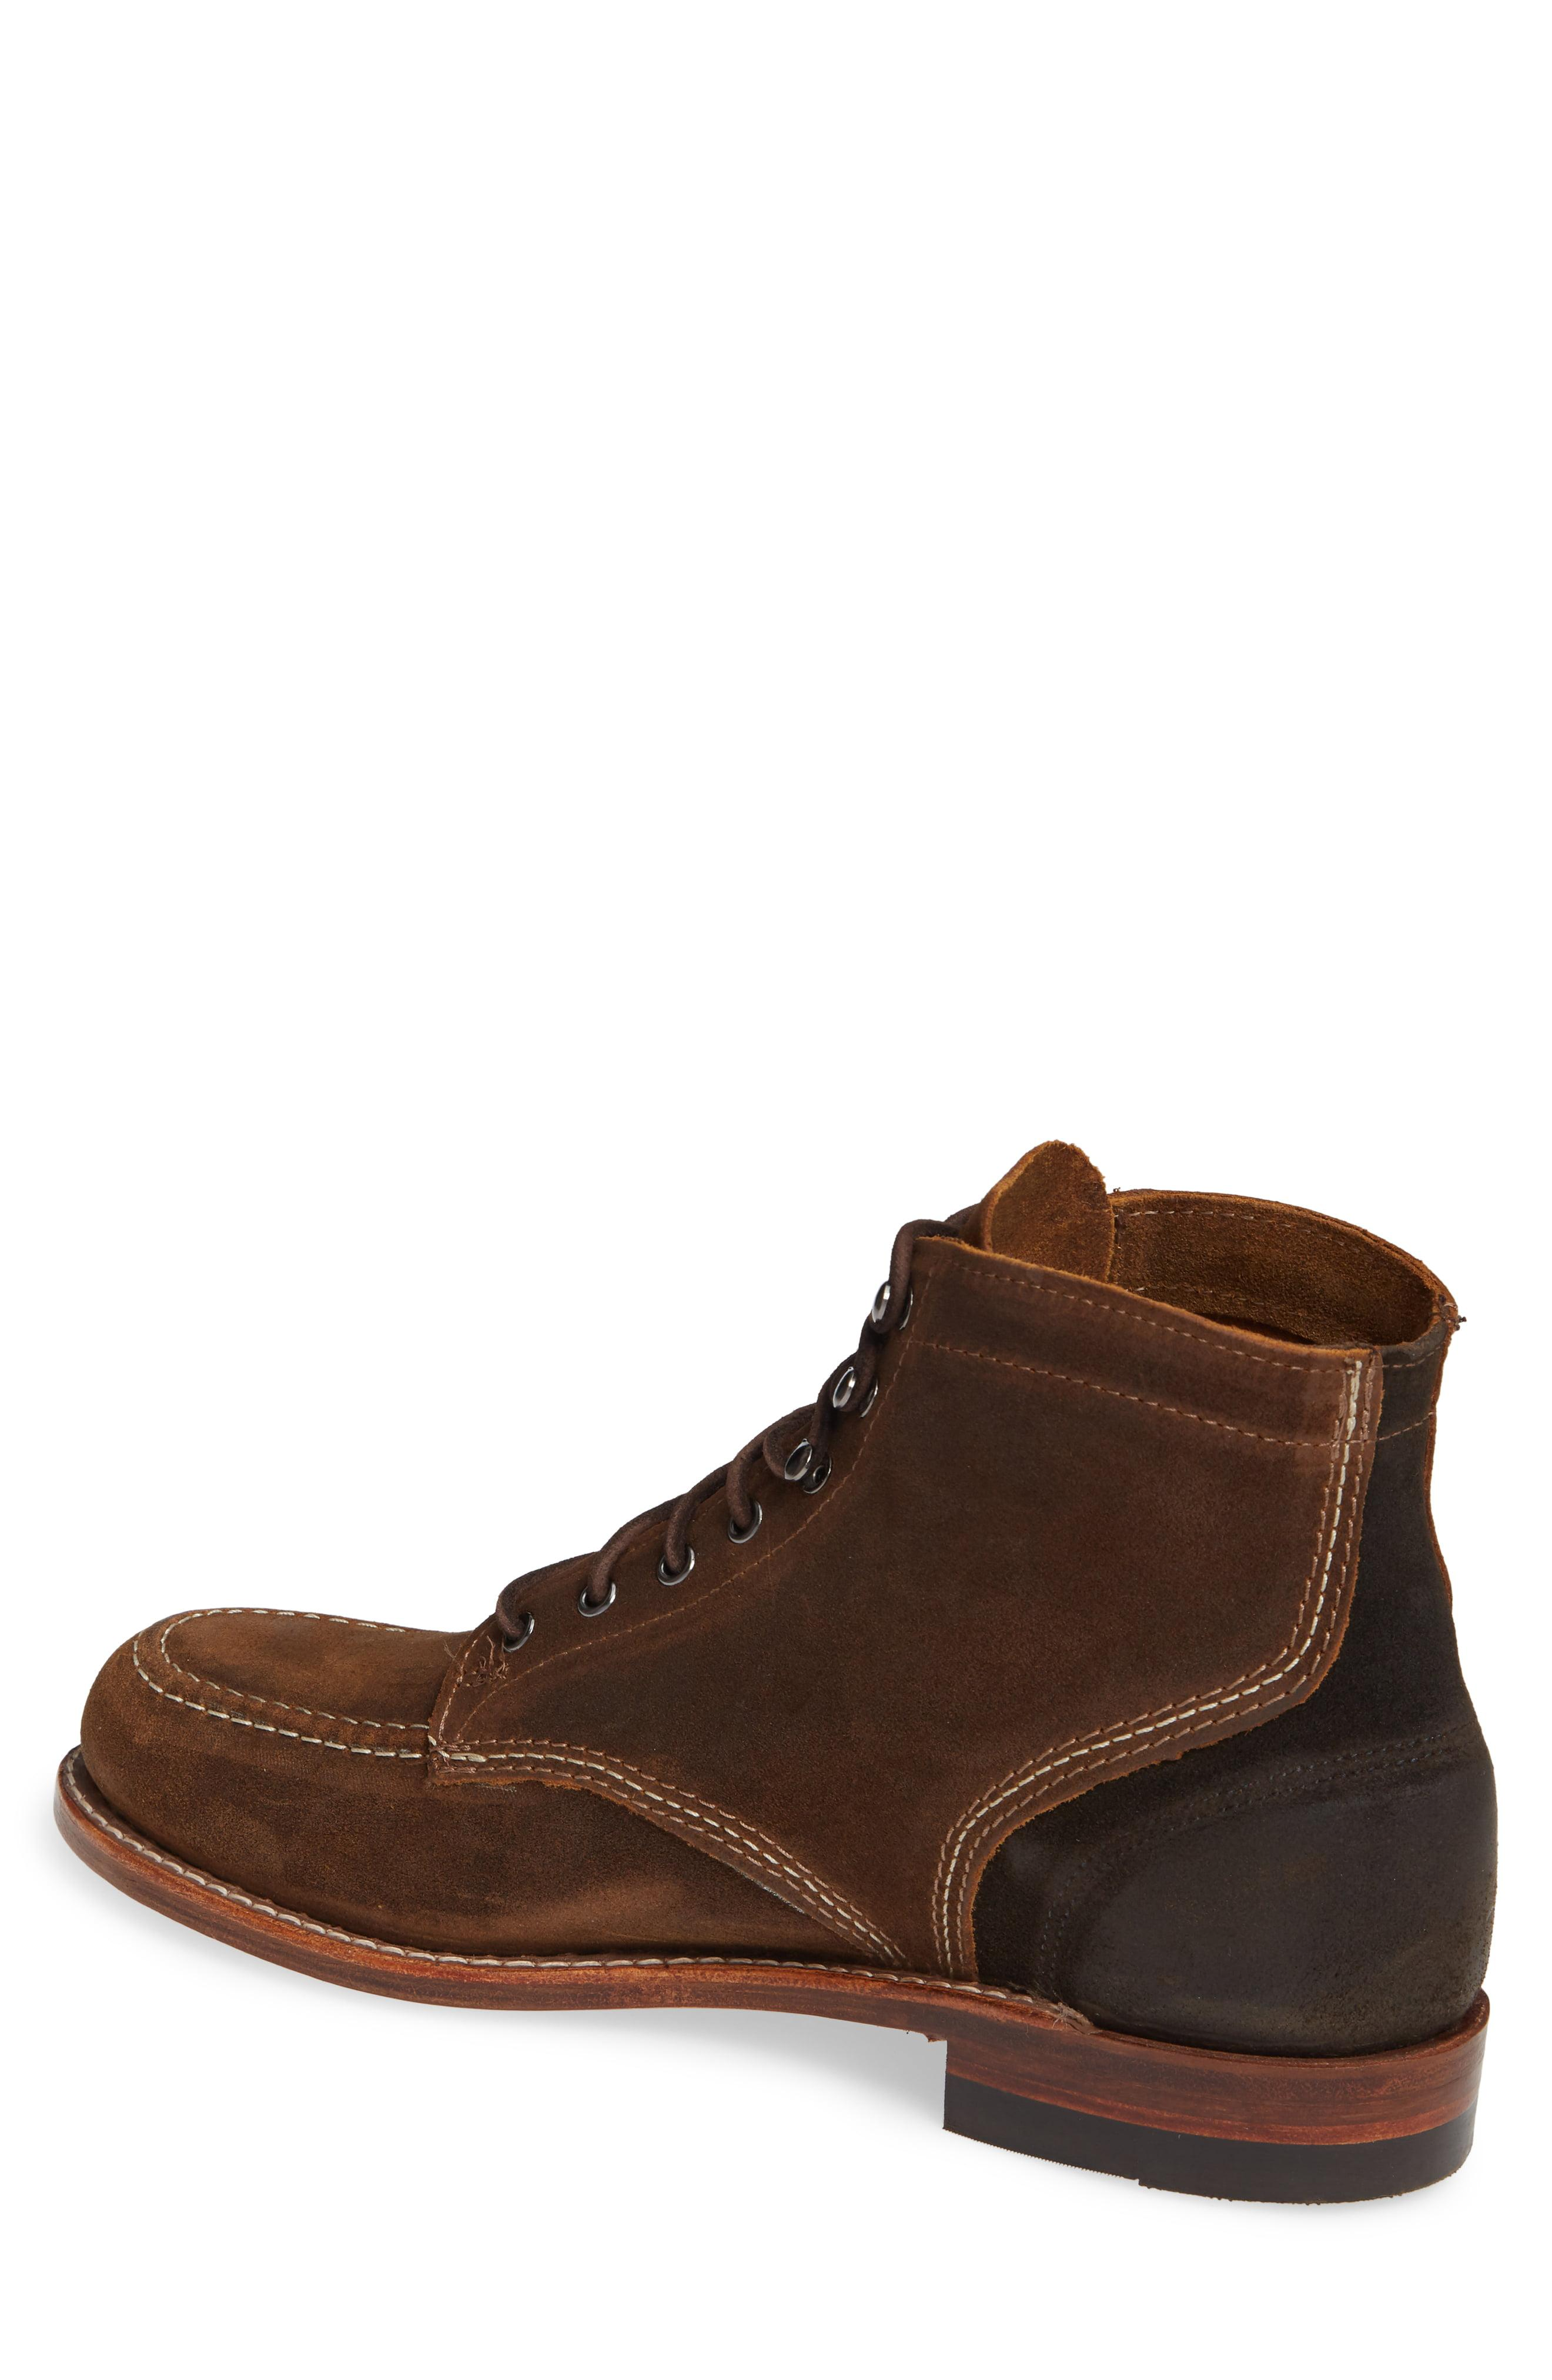 053347e7f3a Lyst - Wolverine 1000 Mile 1940 Apron Toe Boot in Brown for Men